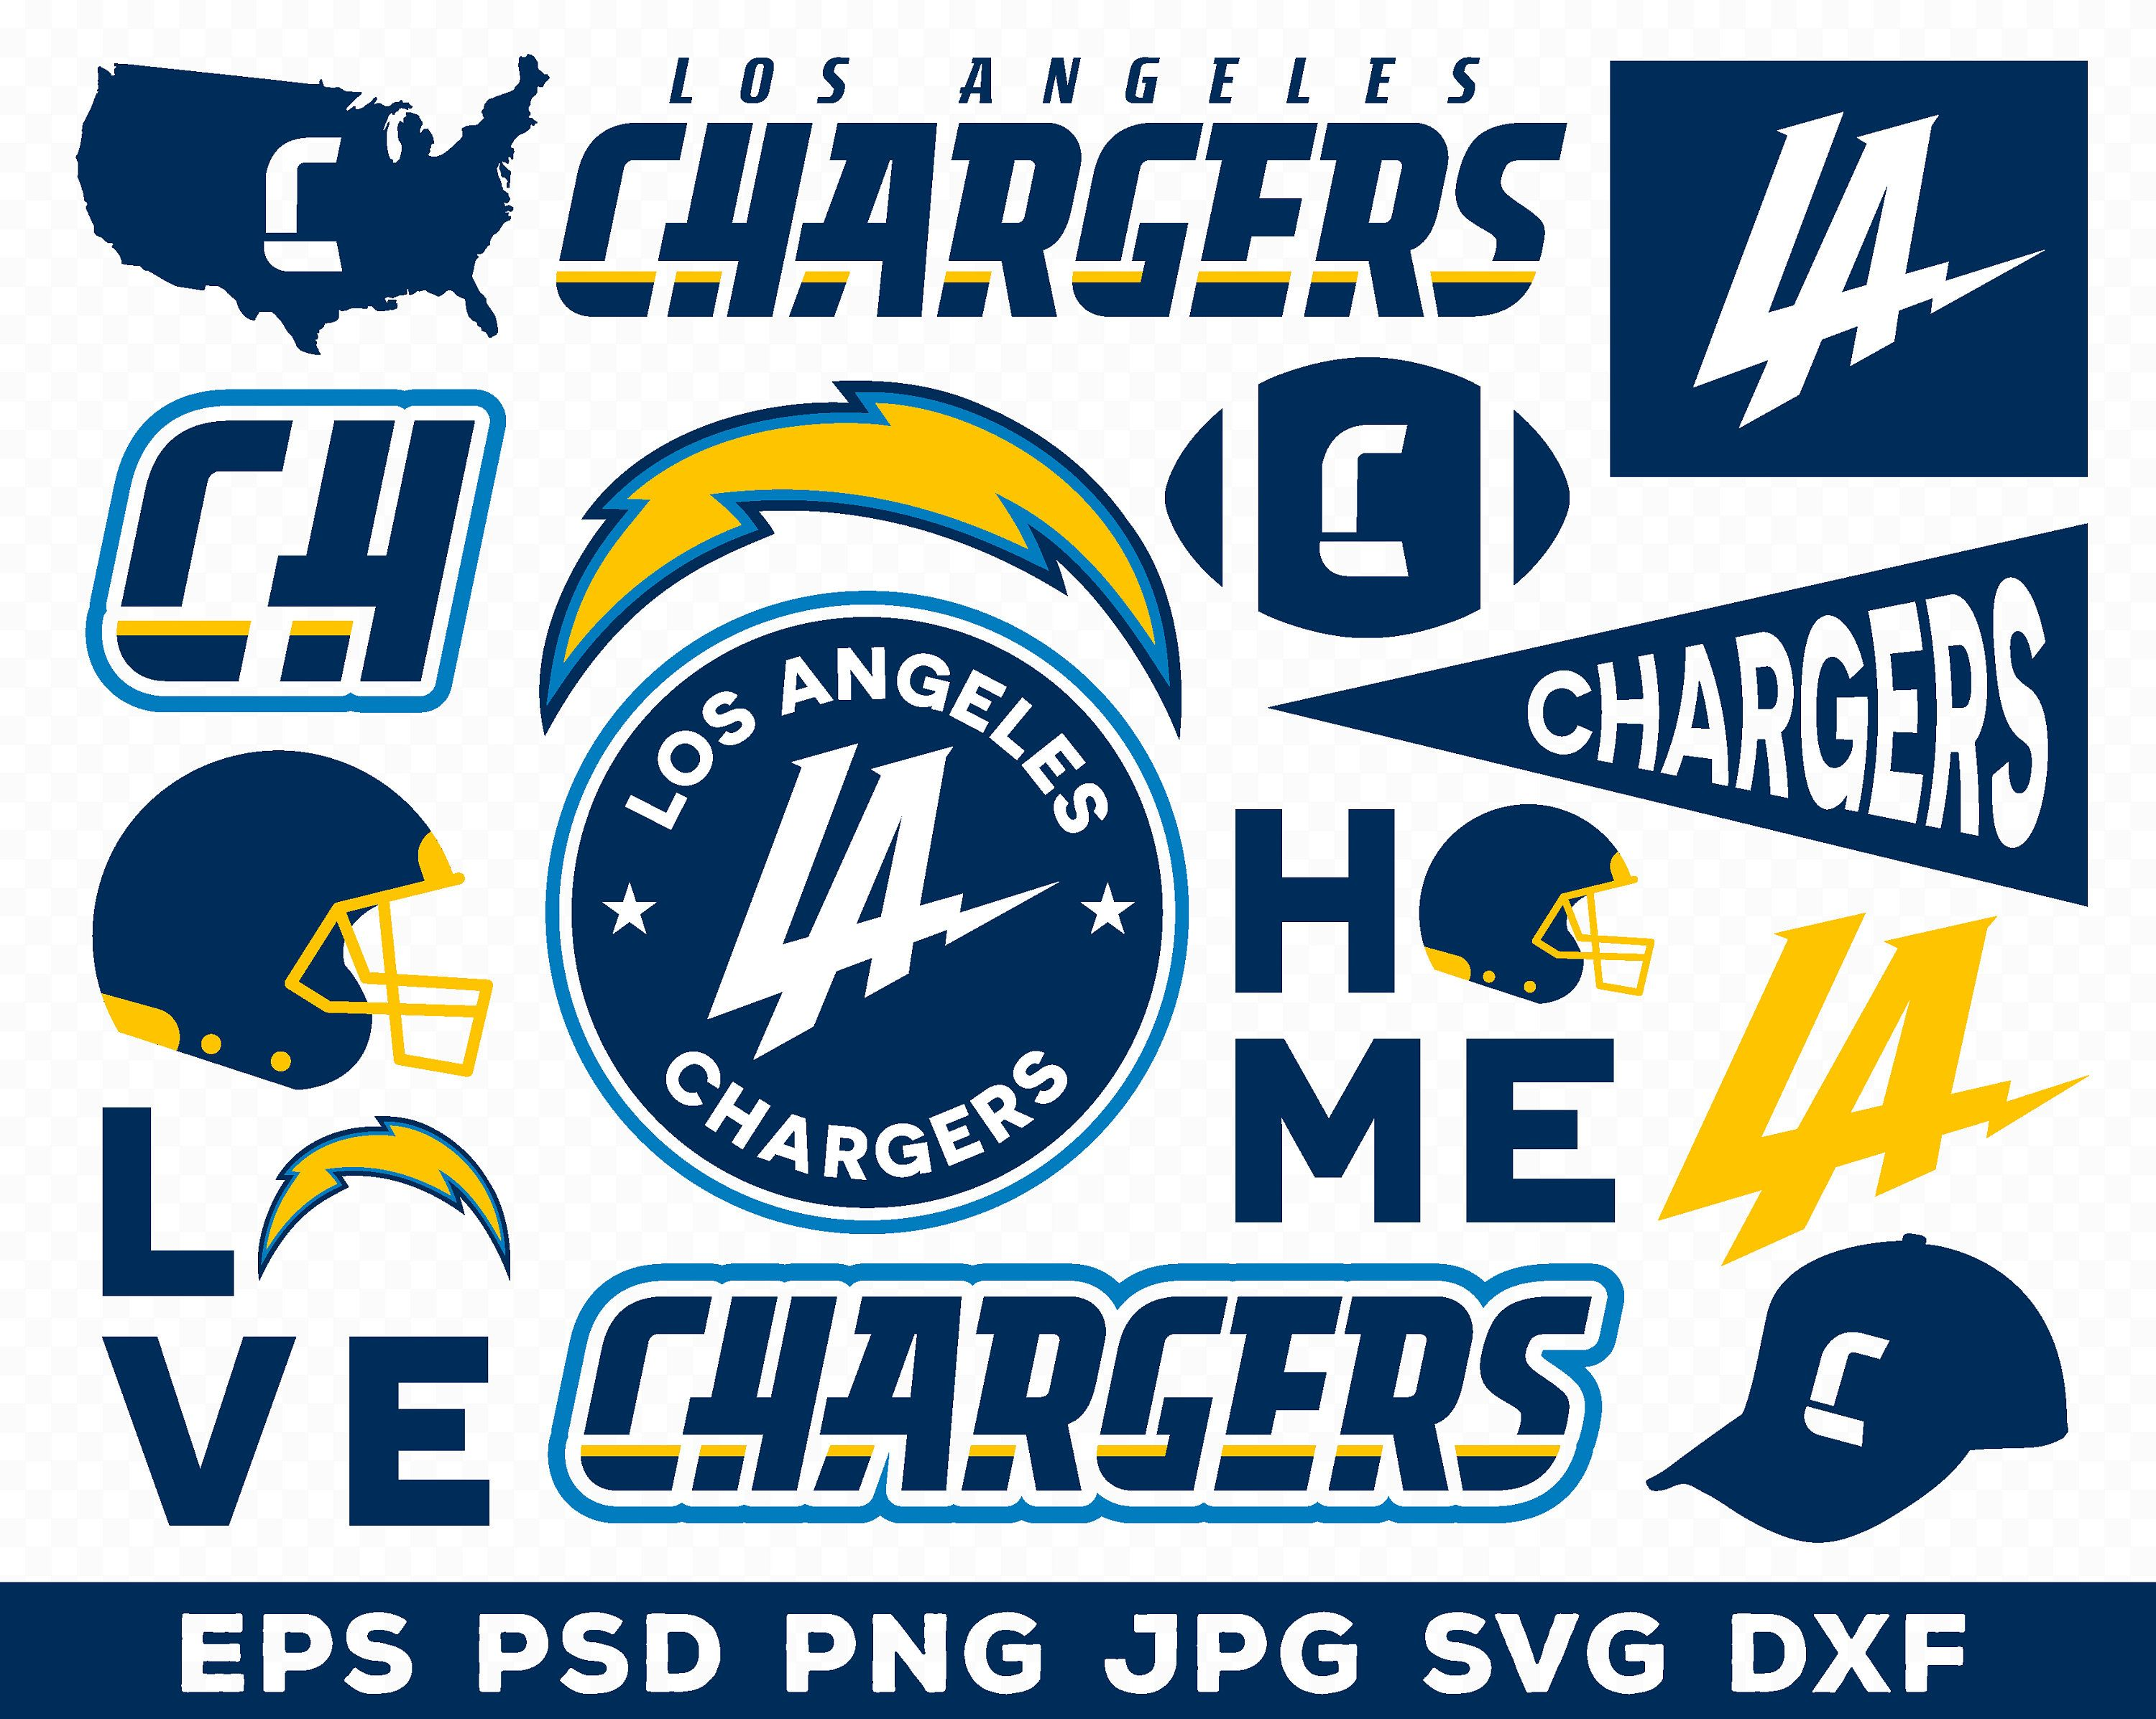 Los Angeles Chargers Los Angeles Chargers Logo Los Angeles Chargers Svg Los Angeles Charge Los Angeles Chargers Logo Chargers Football Los Angeles Chargers